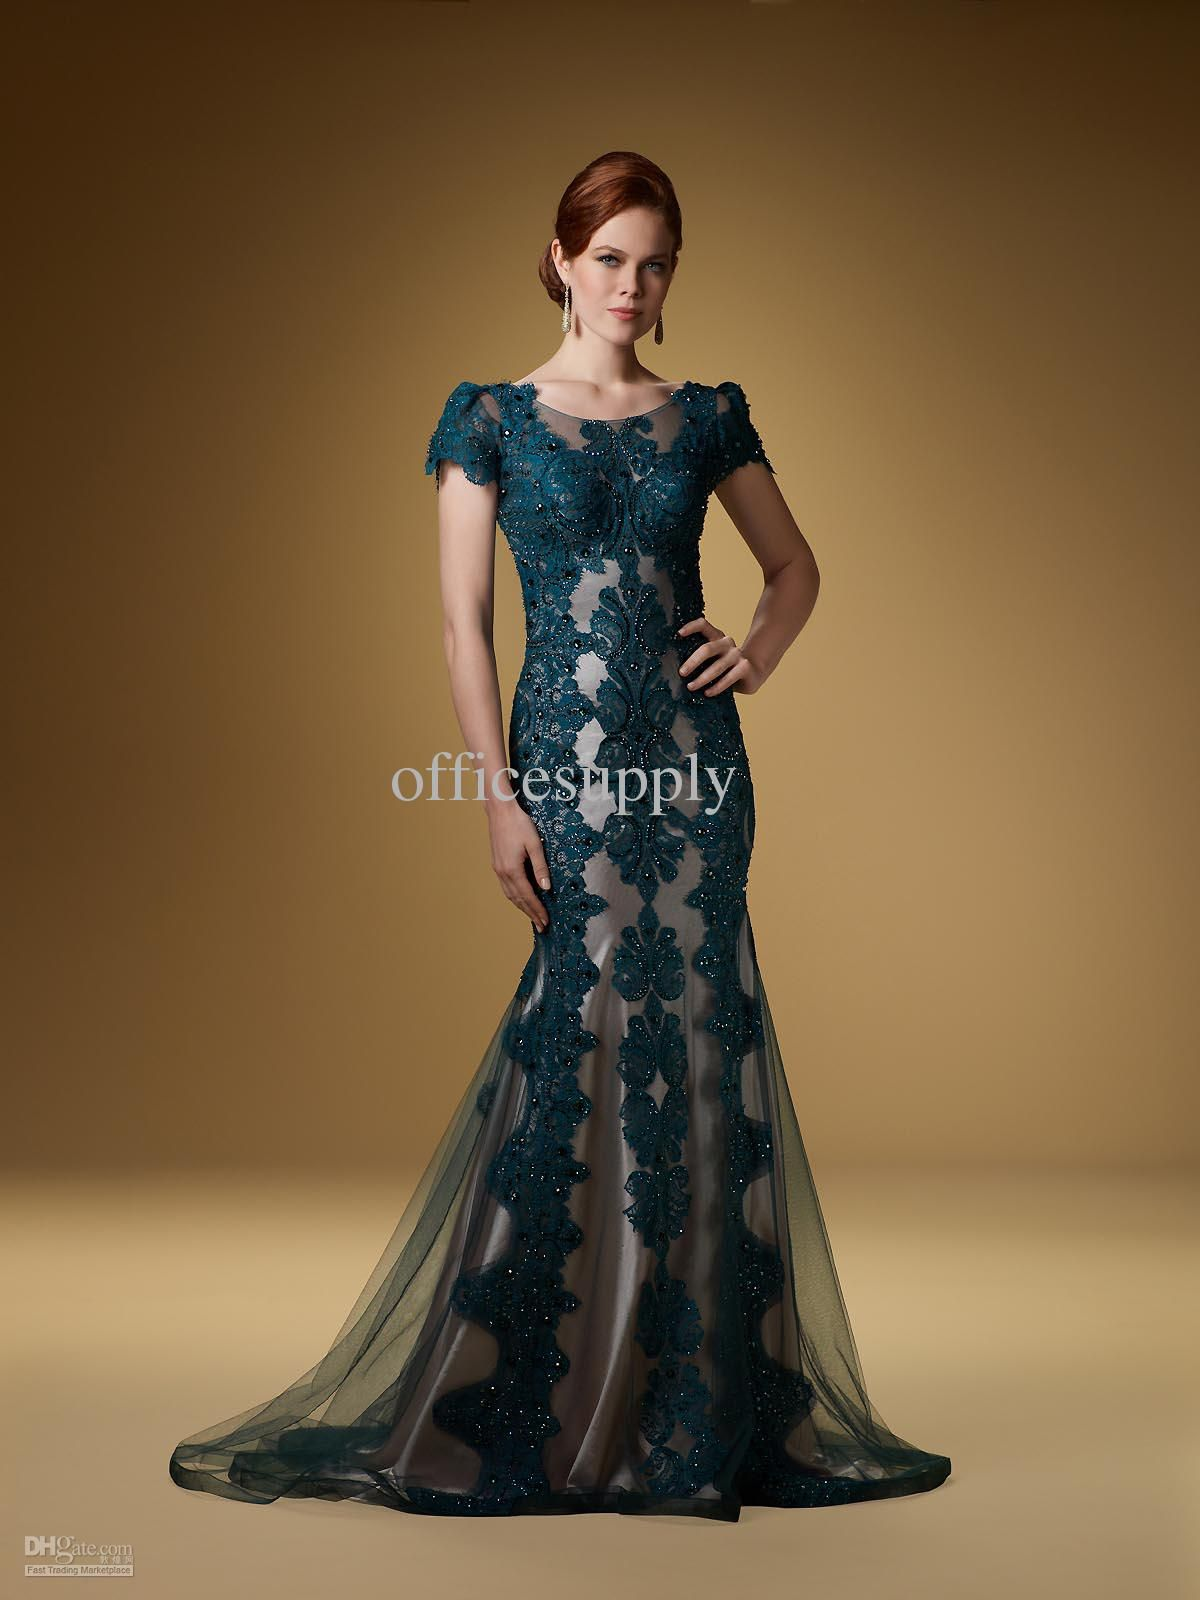 Wholesale Green Cap Sleeve Applique Evening Dresses Gown with Lace